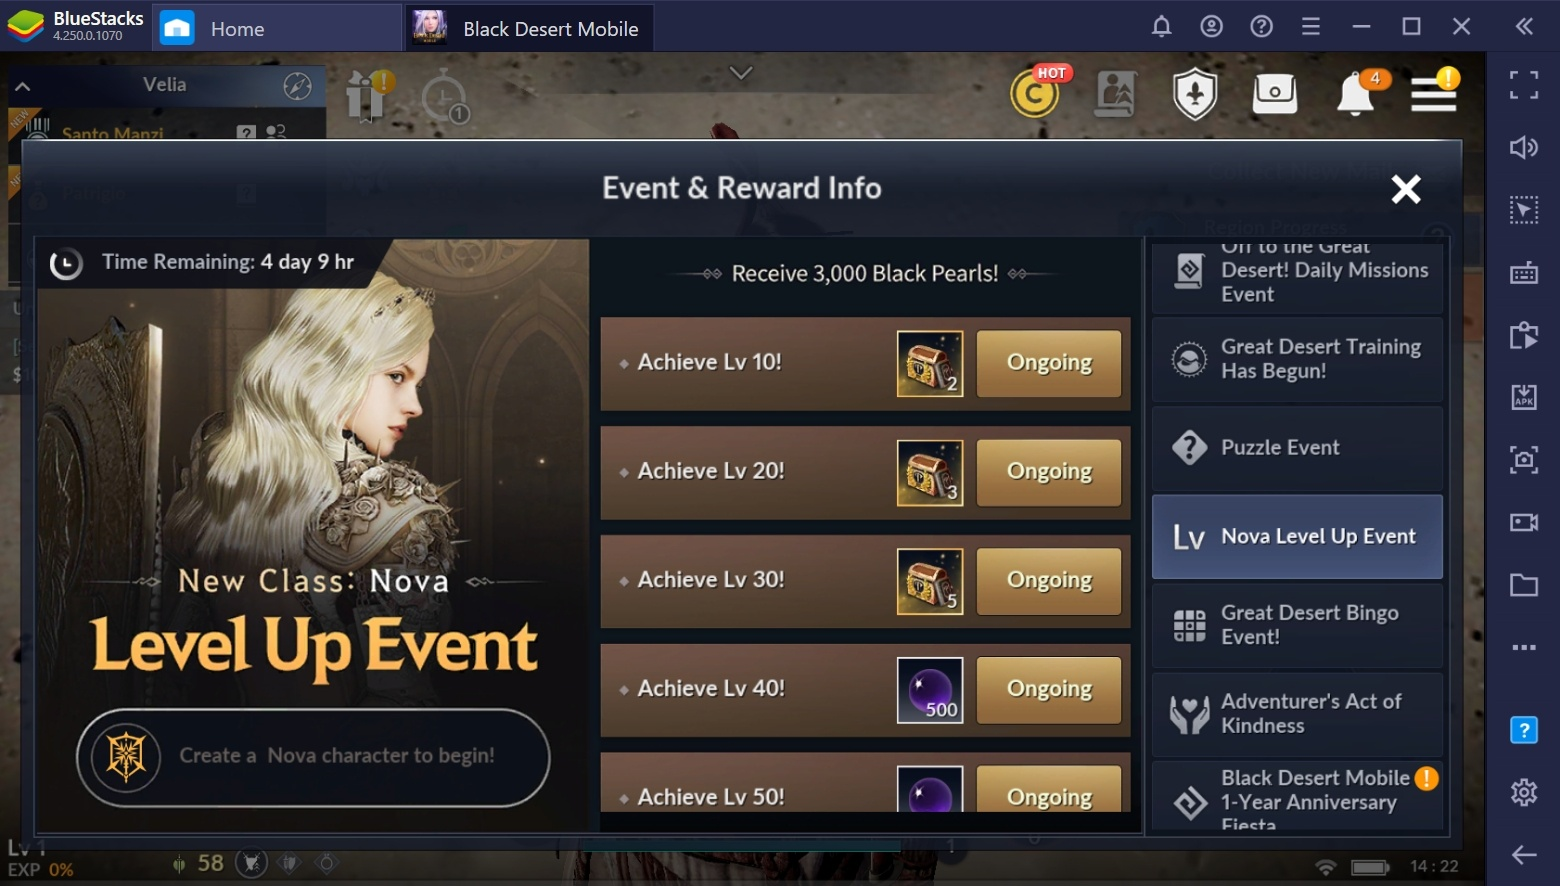 Black Desert Mobile on PC – Awakening and Succession Forms of the 'Nova' Class